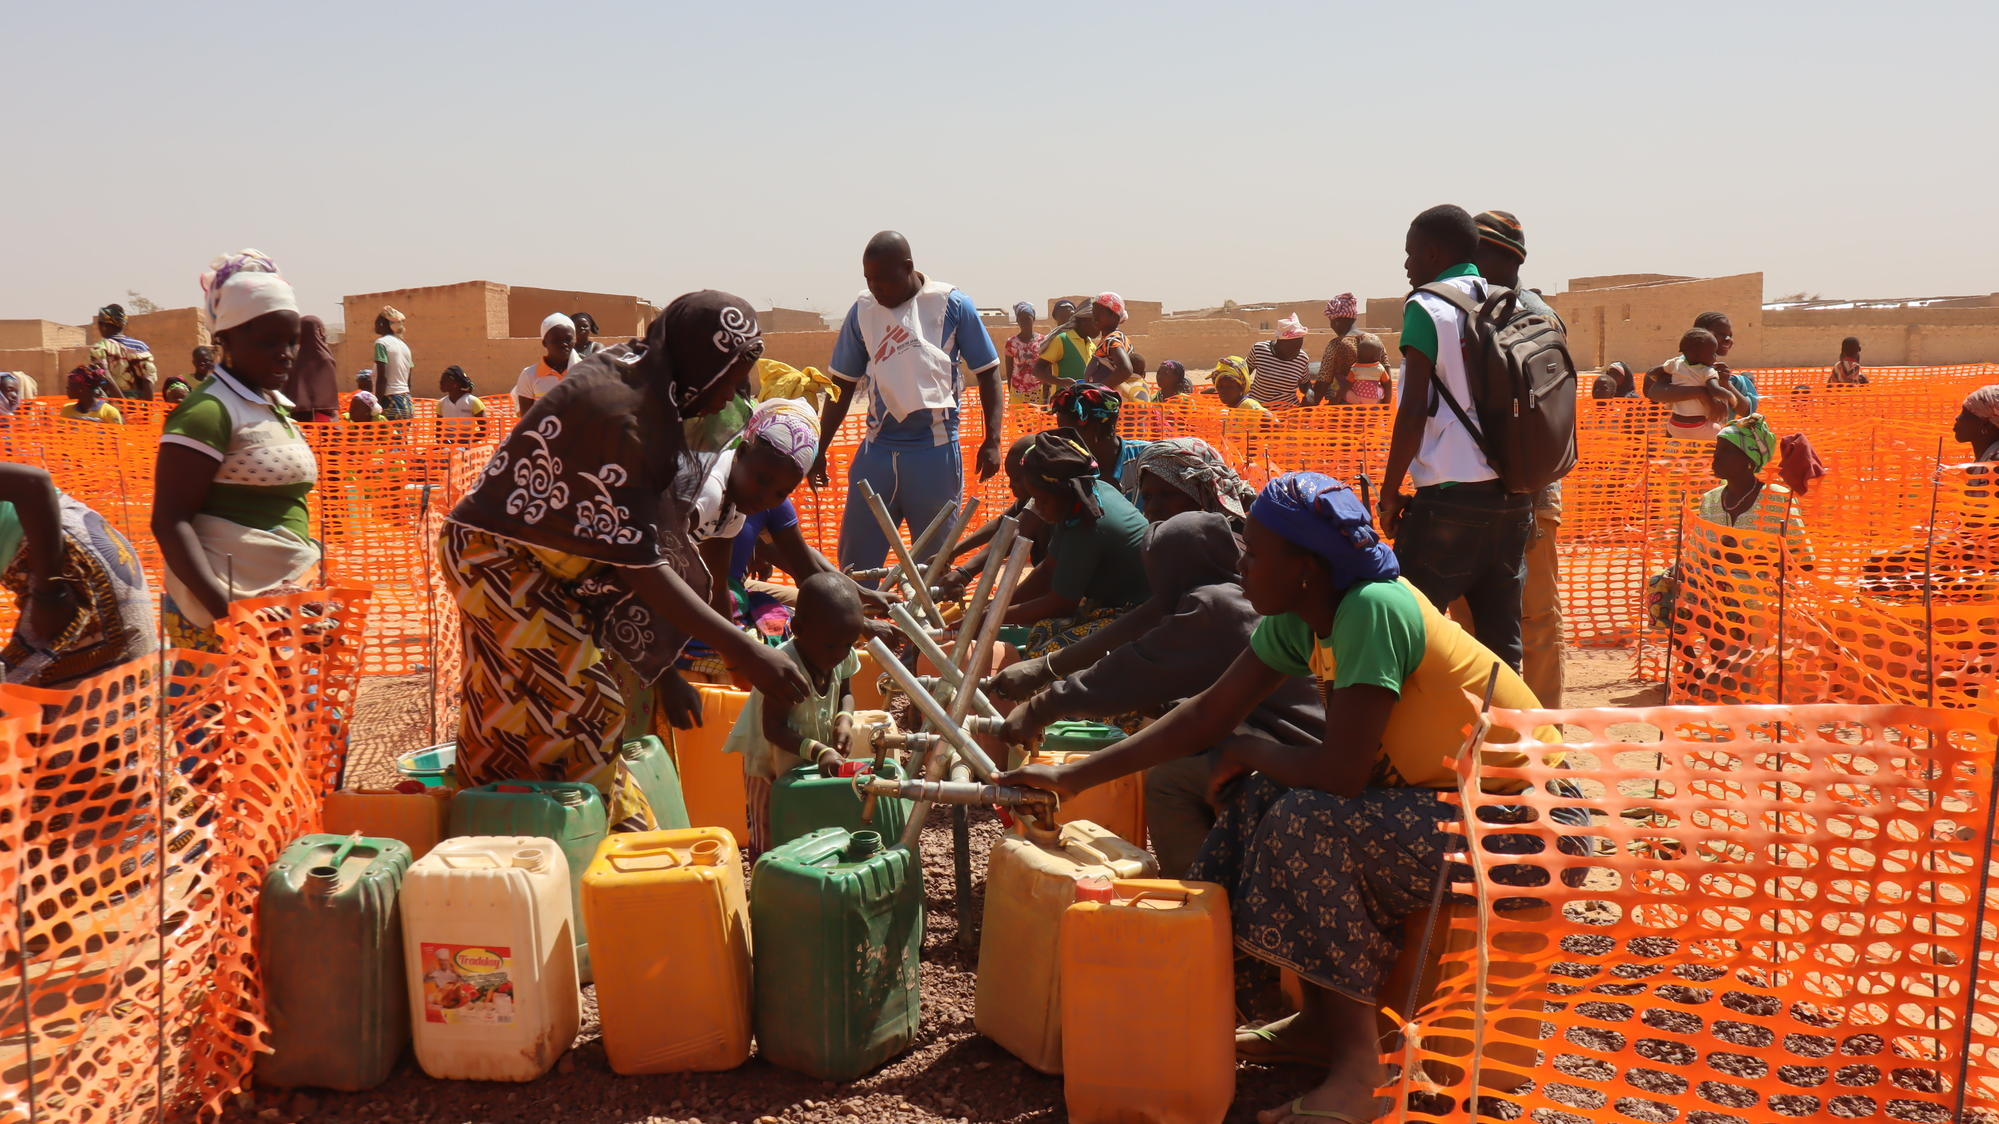 Hundreds of thousands of people have been internally displaced by violence in Burkina Faso